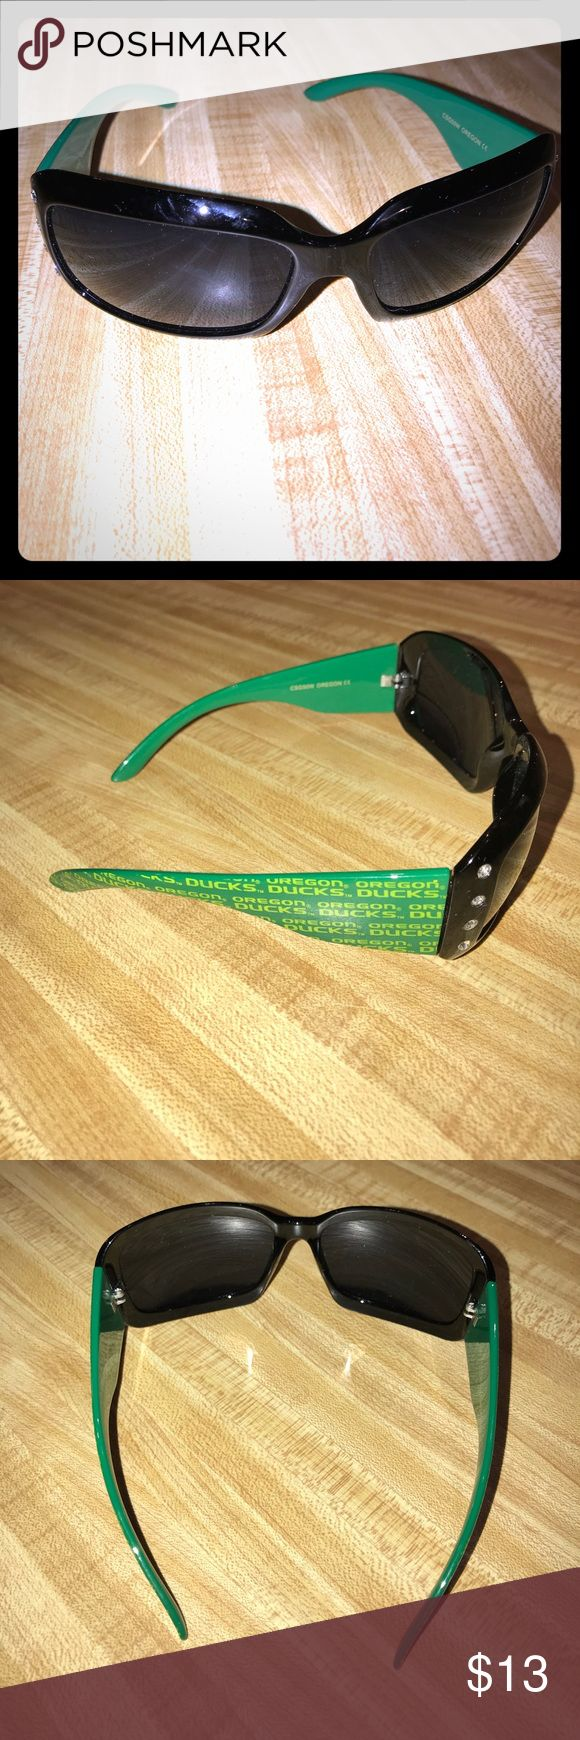 💚💛Oregon Ducks, NWOT, sunglasses with bling 💚💛Oregon Ducks, NWOT, sunglasses with bling! Be game day ready all year long! Accessories Sunglasses